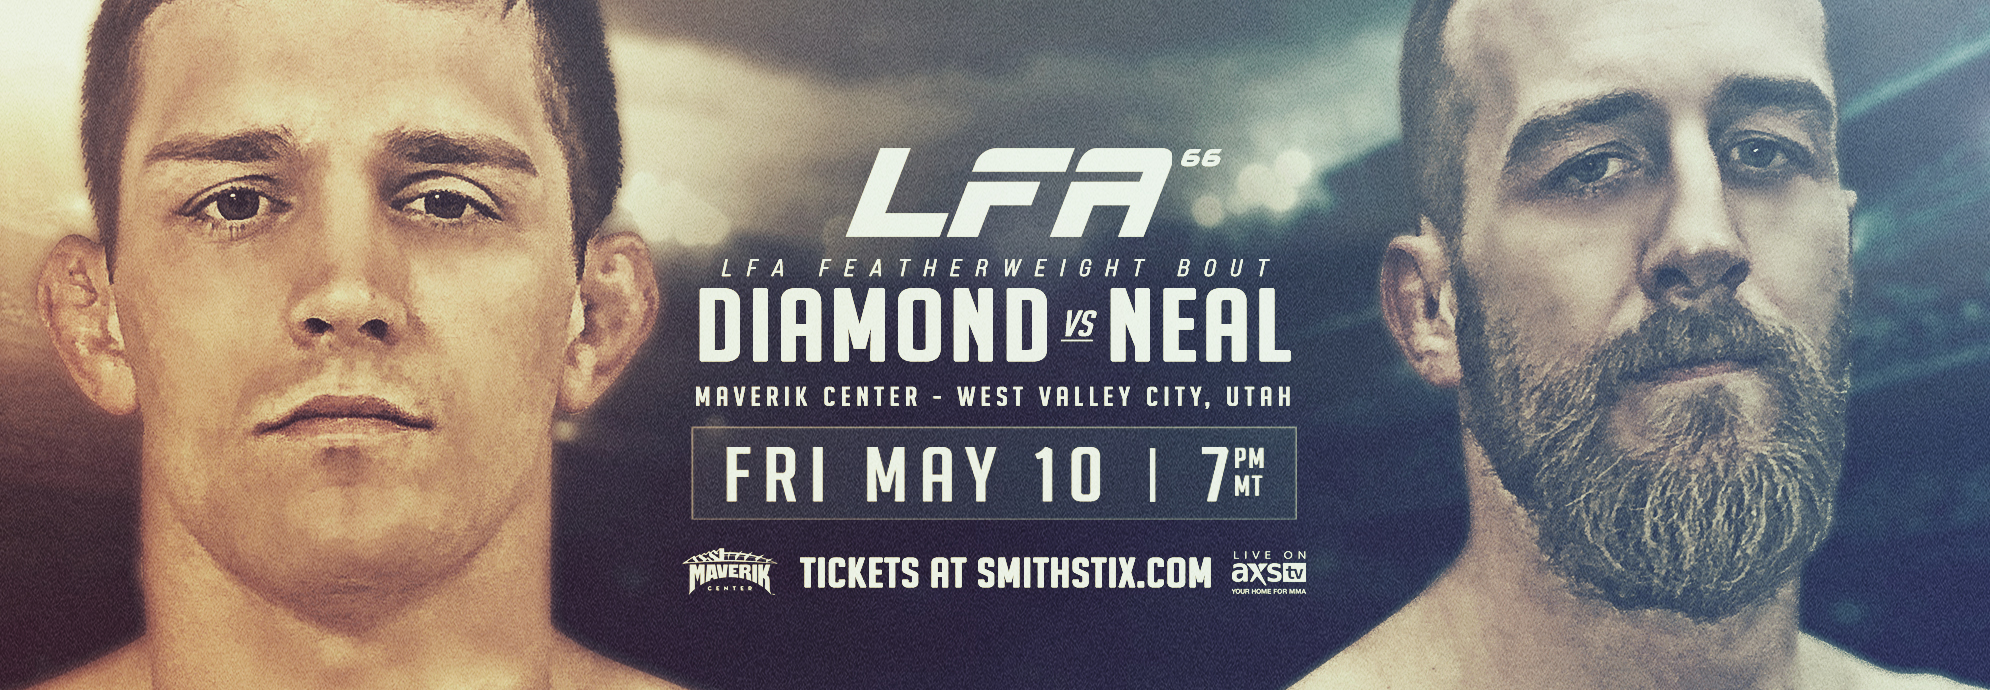 Legacy Fighting Alliance 66